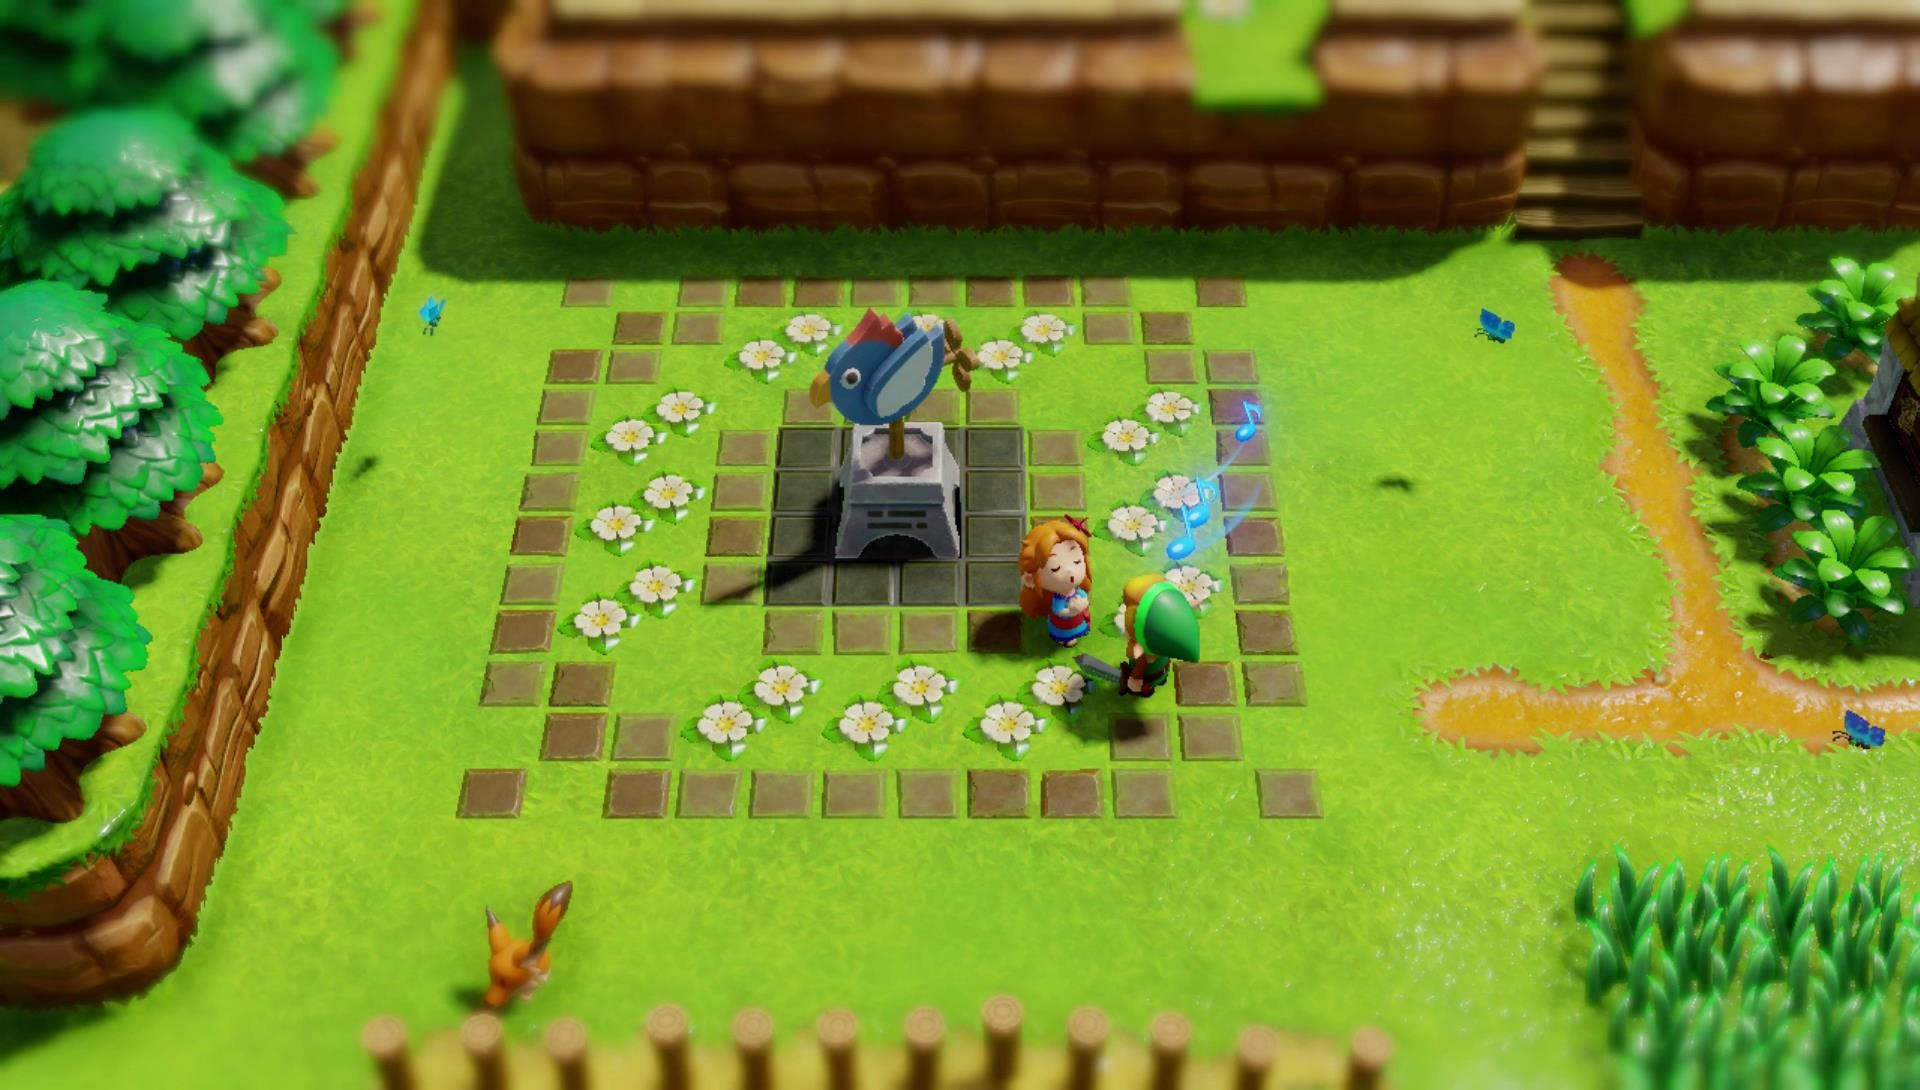 Link S Awakening Is An Excellent Update Of A 90s Video Game